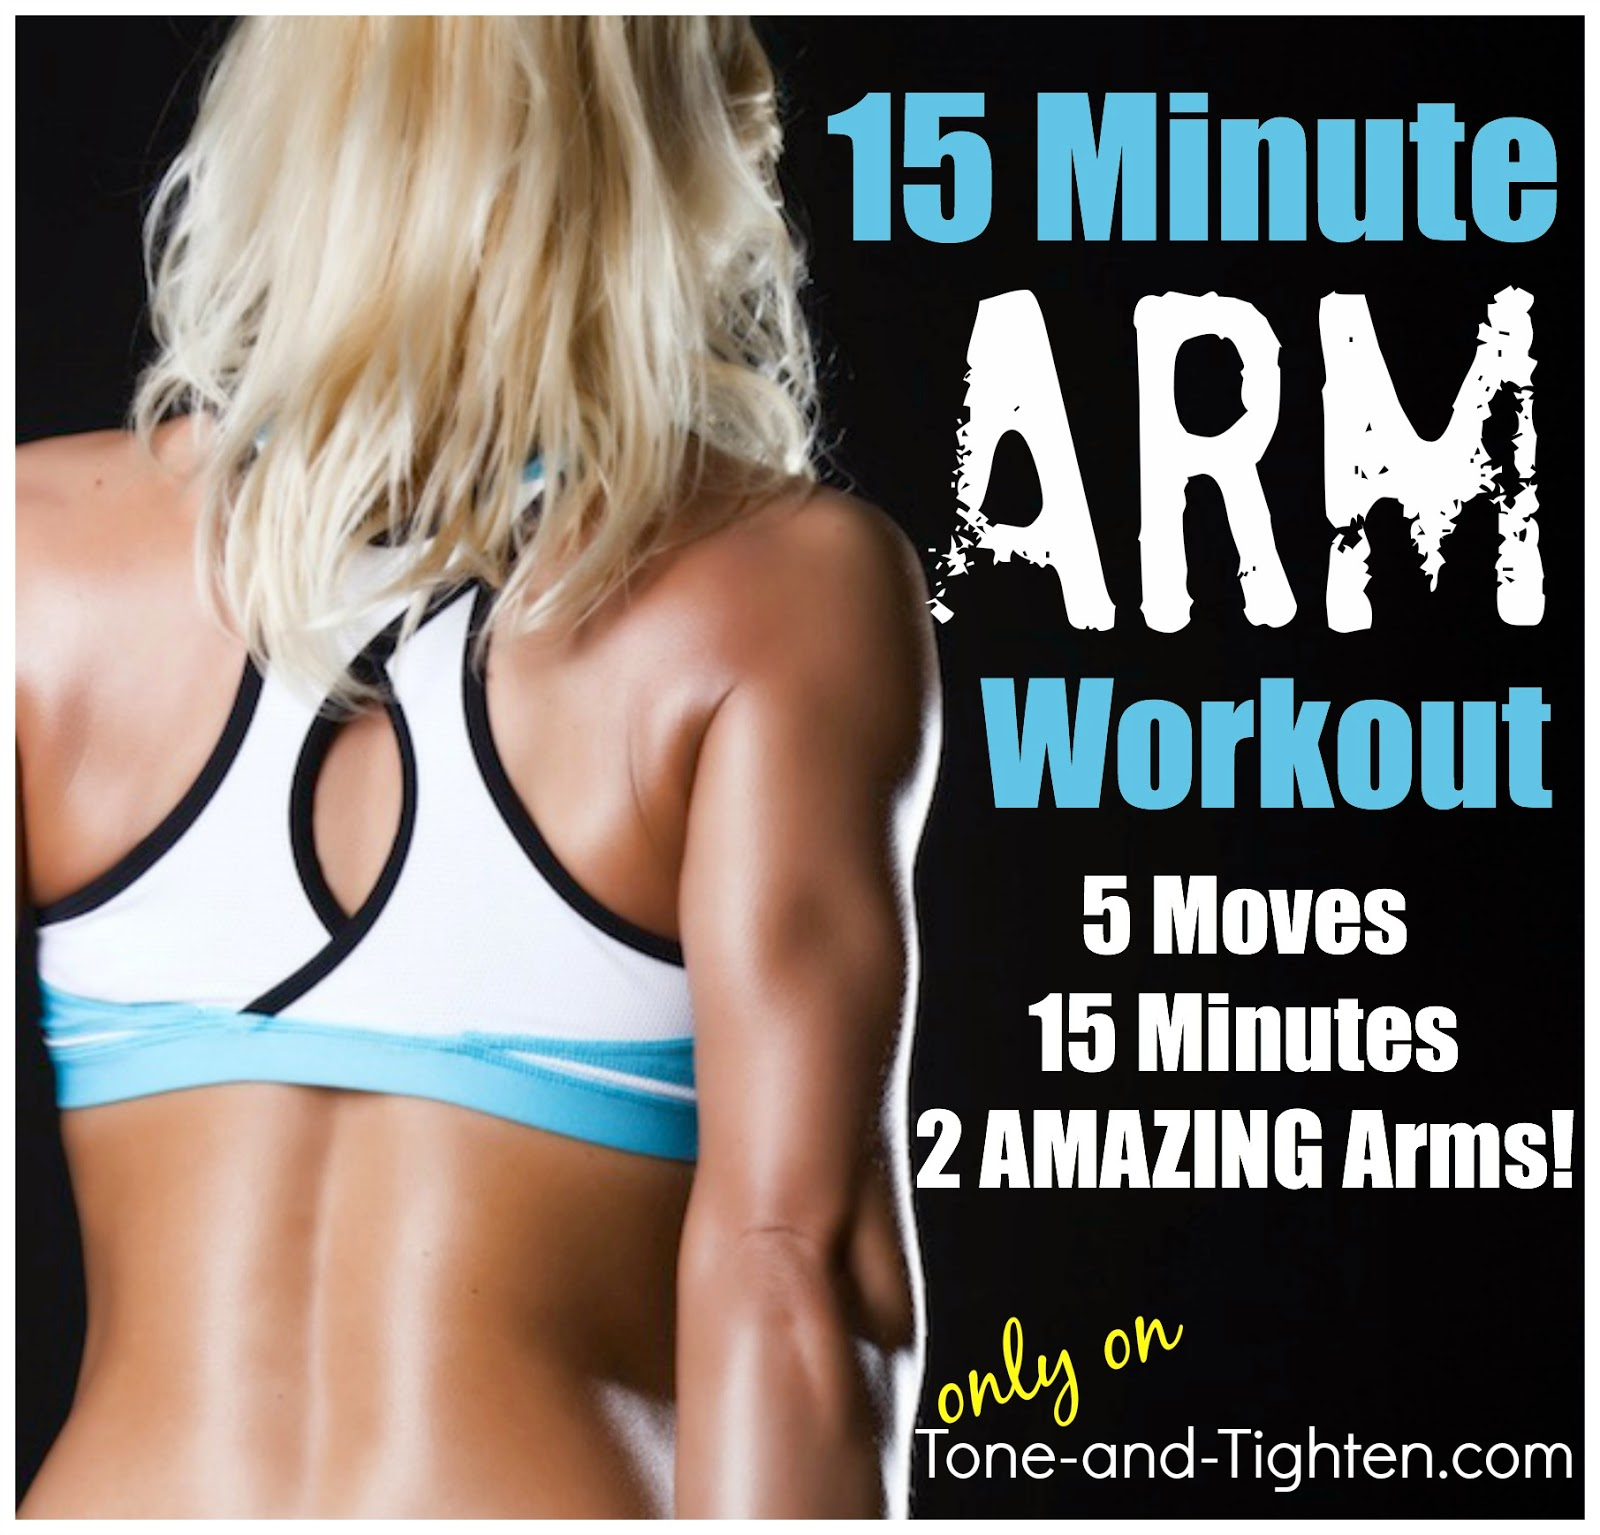 https://tone-and-tighten.com/2014/02/15-minute-at-home-arm-workout-sleek-and-sexy-arms-in-no-time.html